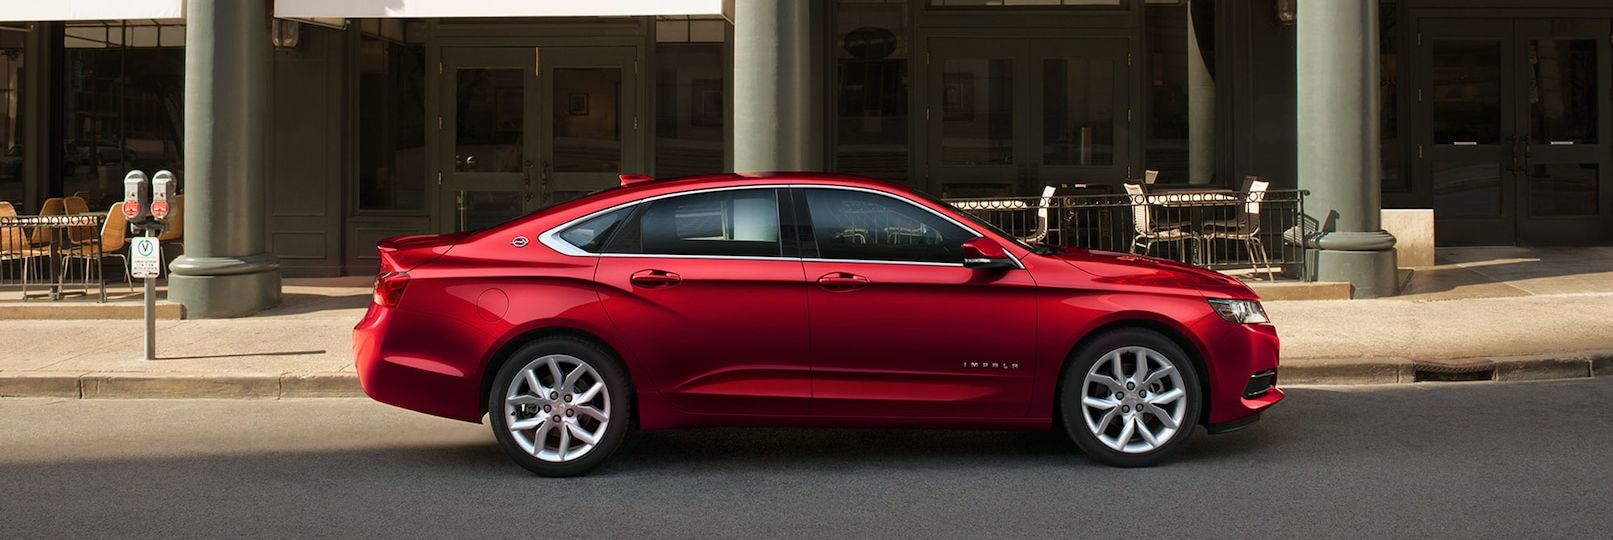 Used Chevrolet Impala for Sale near Manassas, VA